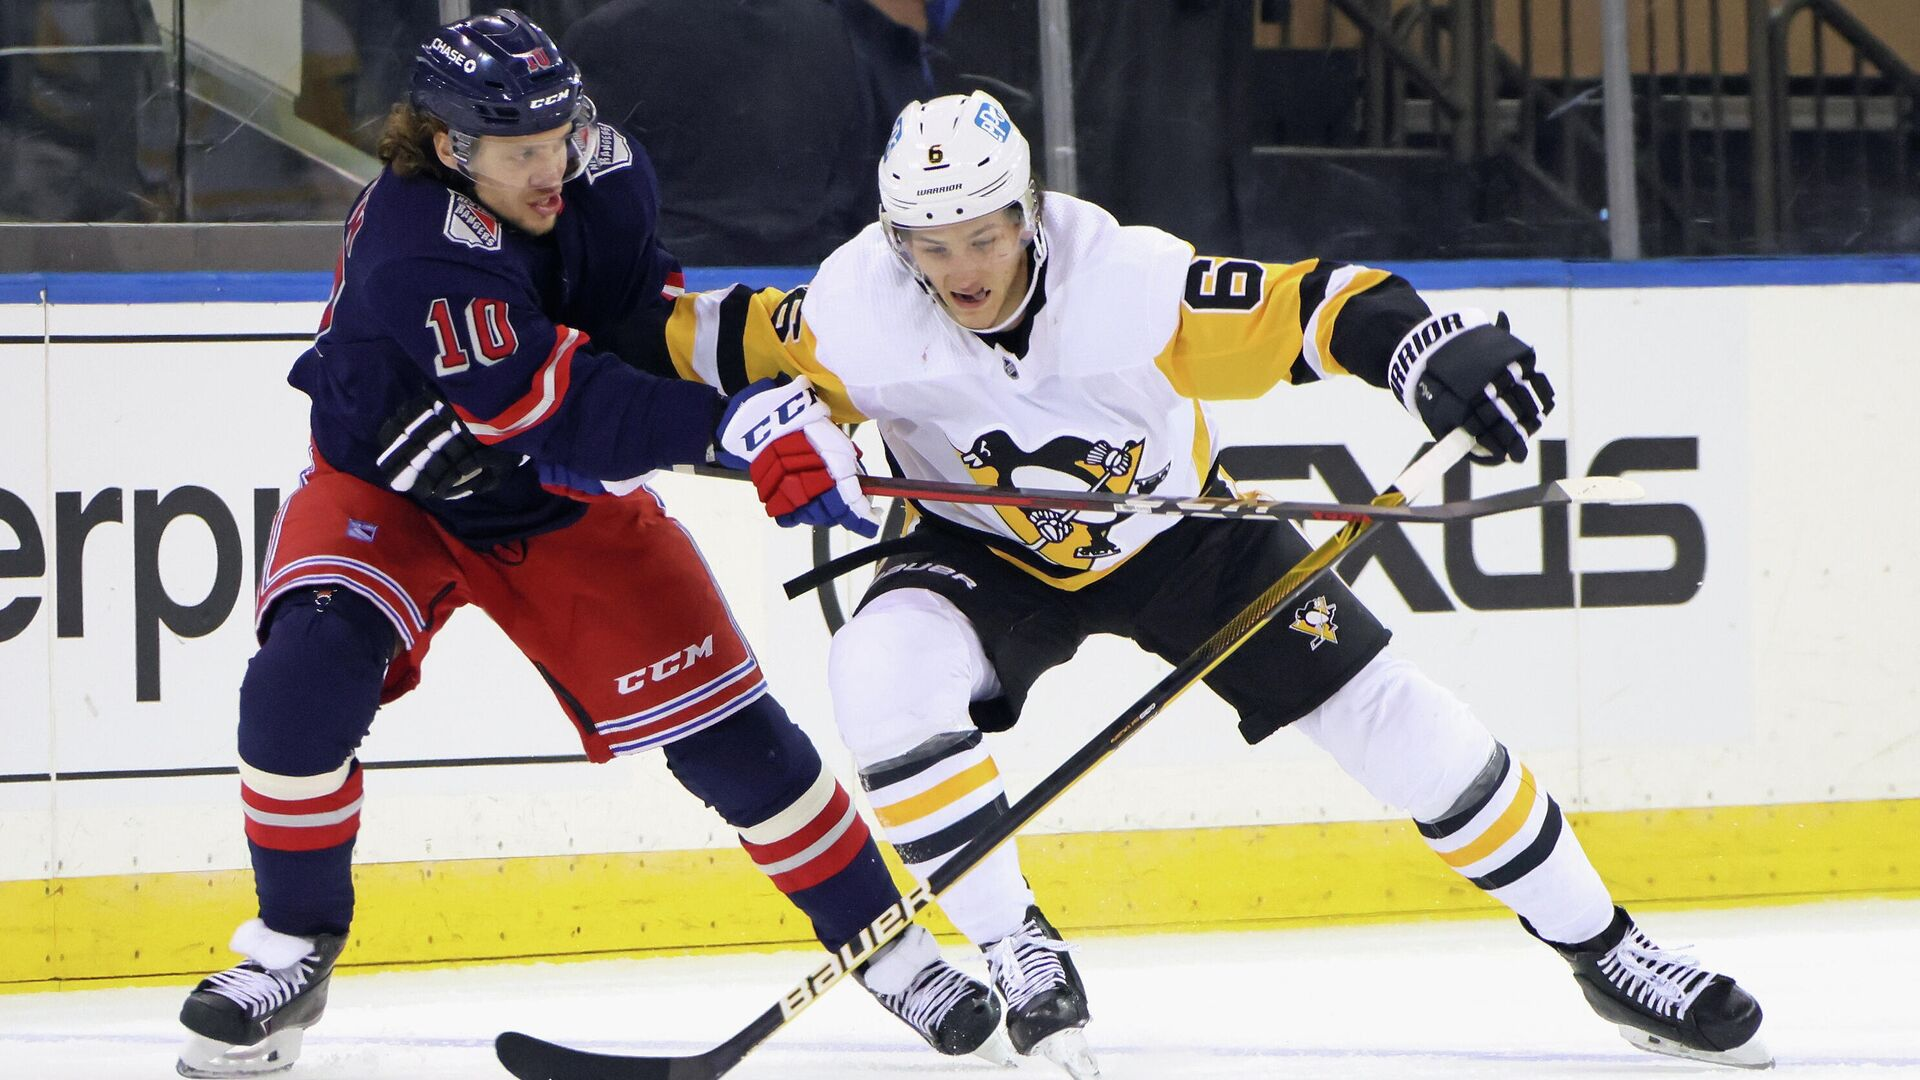 Apr 8, 2021; New York, New York, USA; Pittsburgh Penguins defenseman John Marino (6) plays for the puck against New York Rangers left wing Artemi Panarin (10) during the first period at Madison Square Garden. Mandatory Credit:  Bruce Bennett/Pool Photo-USA TODAY Sports - РИА Новости, 1920, 10.04.2021